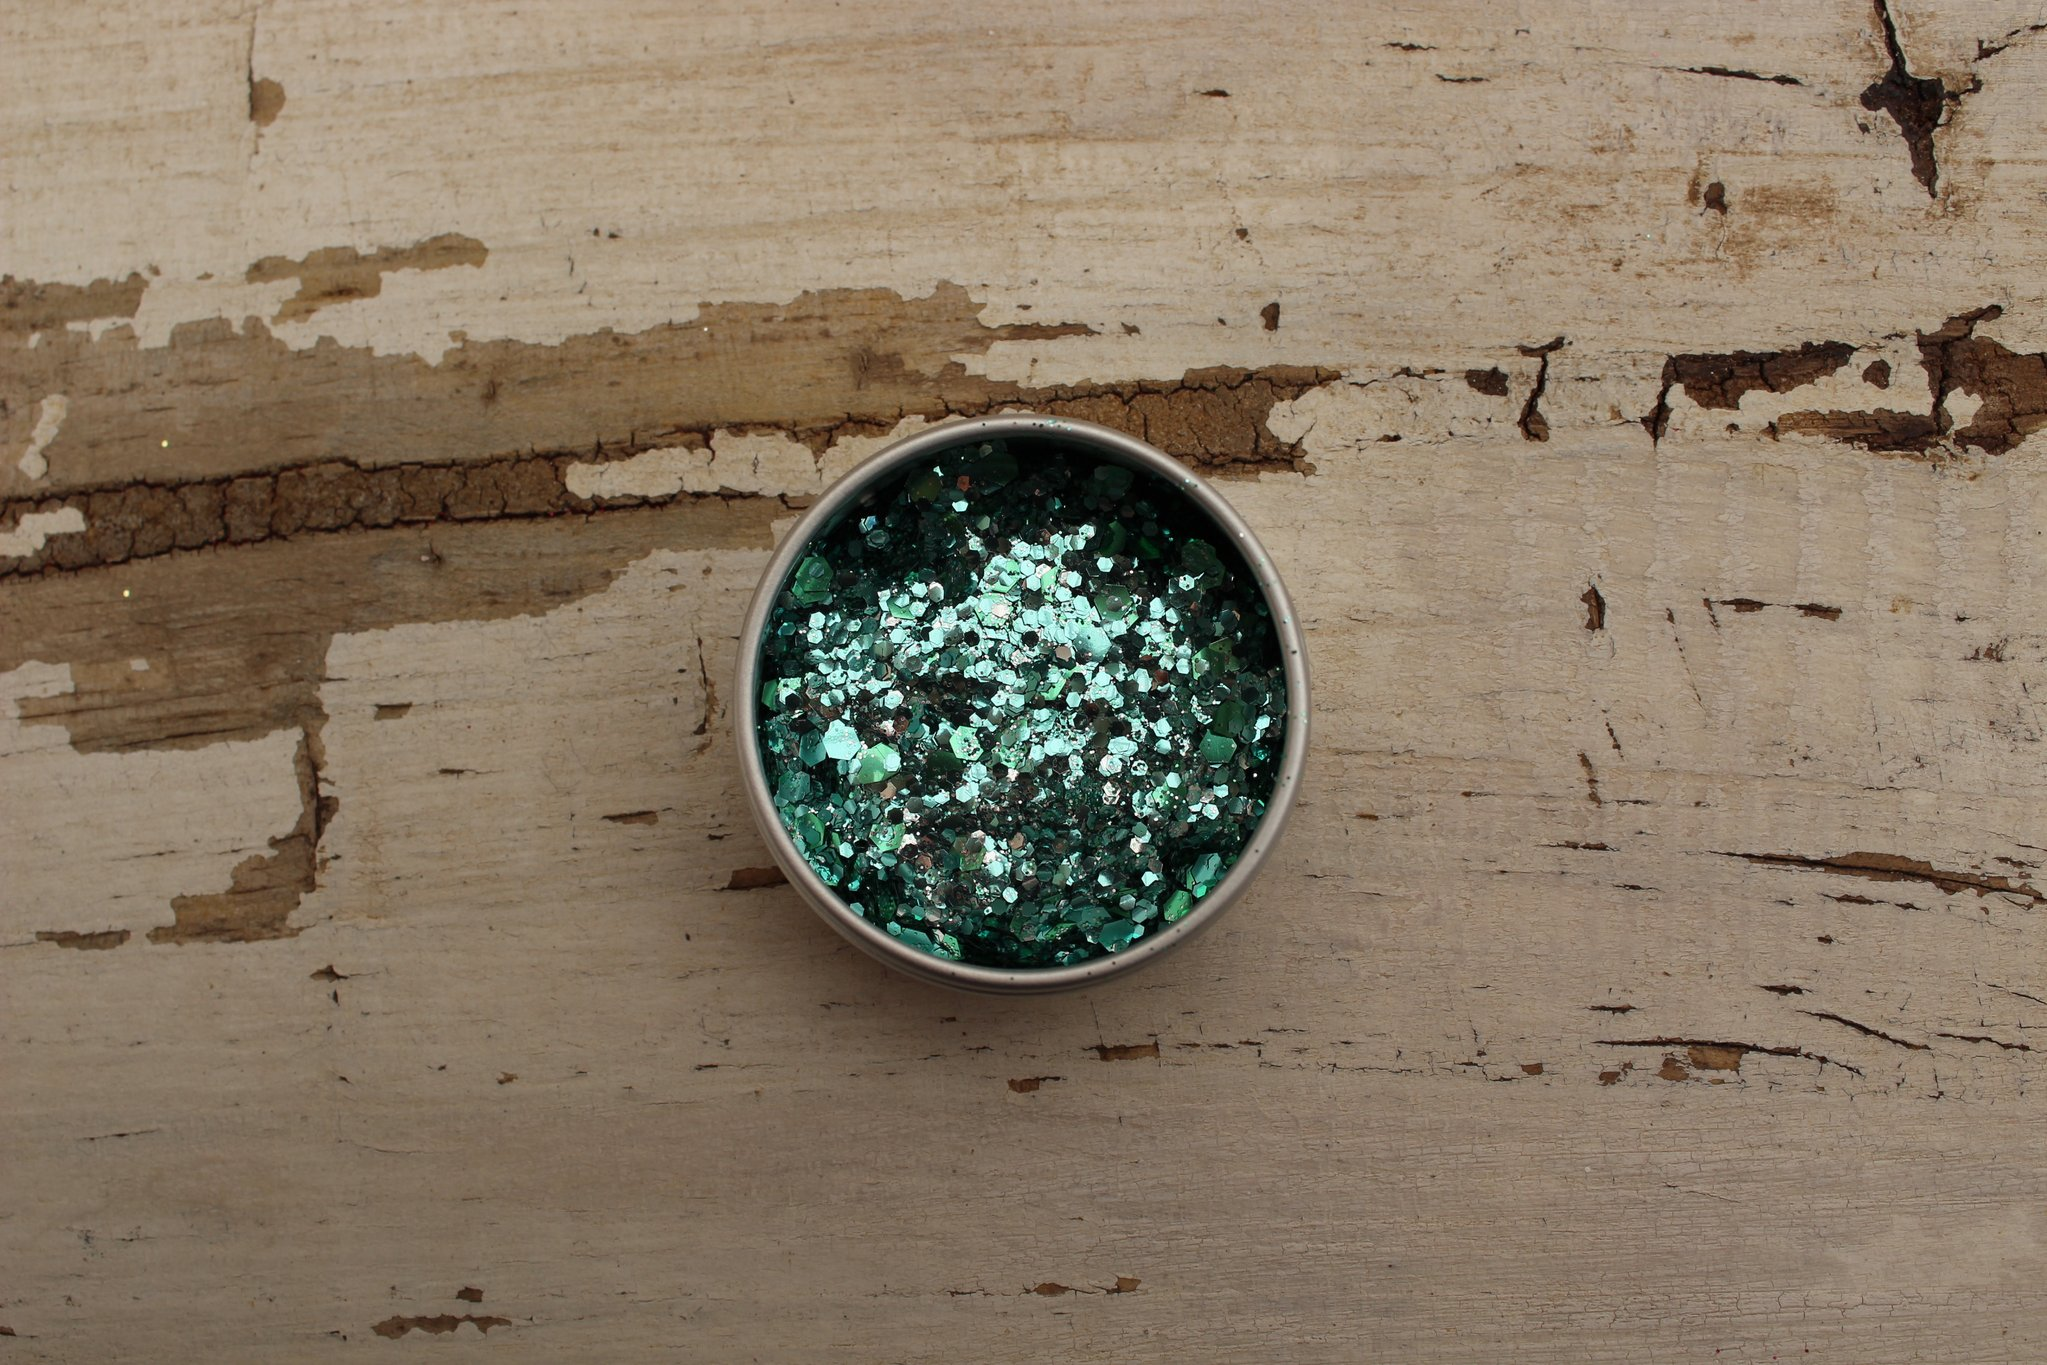 Glitter_Fairy_Biodegradable_Glitter_Blend_Woke_Up_A_Mermaid_1024x1024@2x